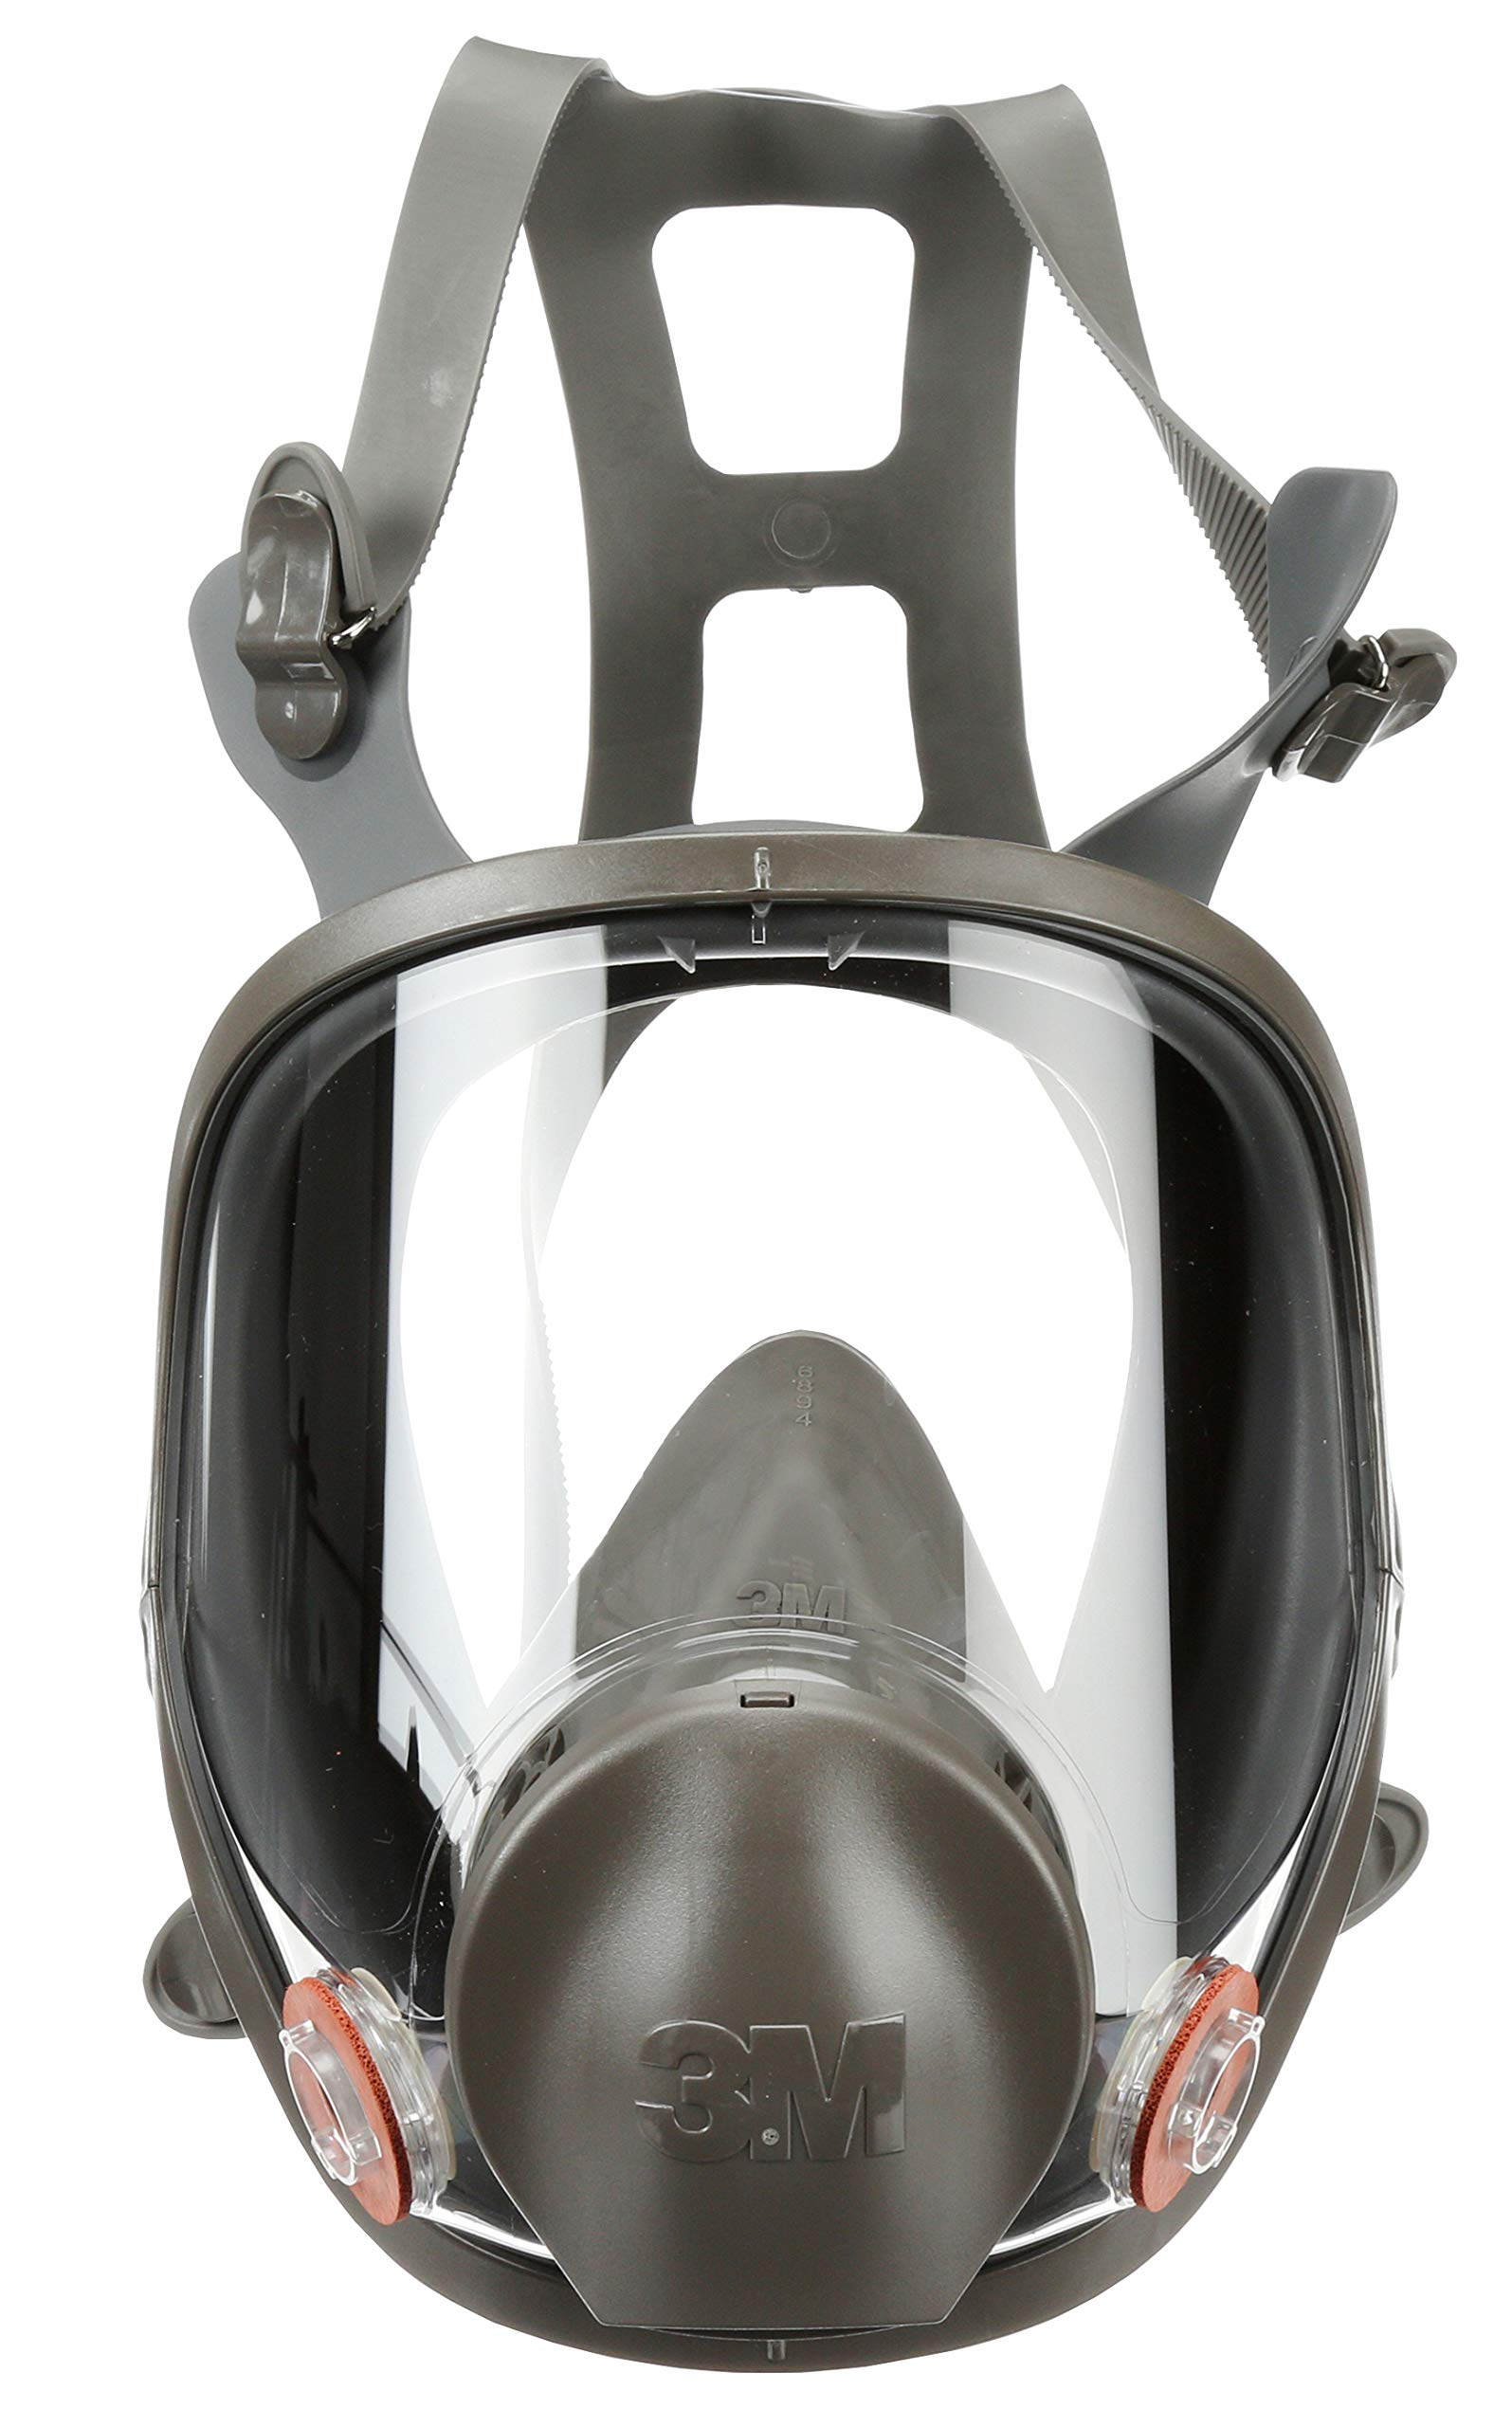 3M Full Facepiece Reusable Respirator 6900, Paint Vapors, Dust, Mold, Chemicals, Large by 3M Personal Protective Equipment